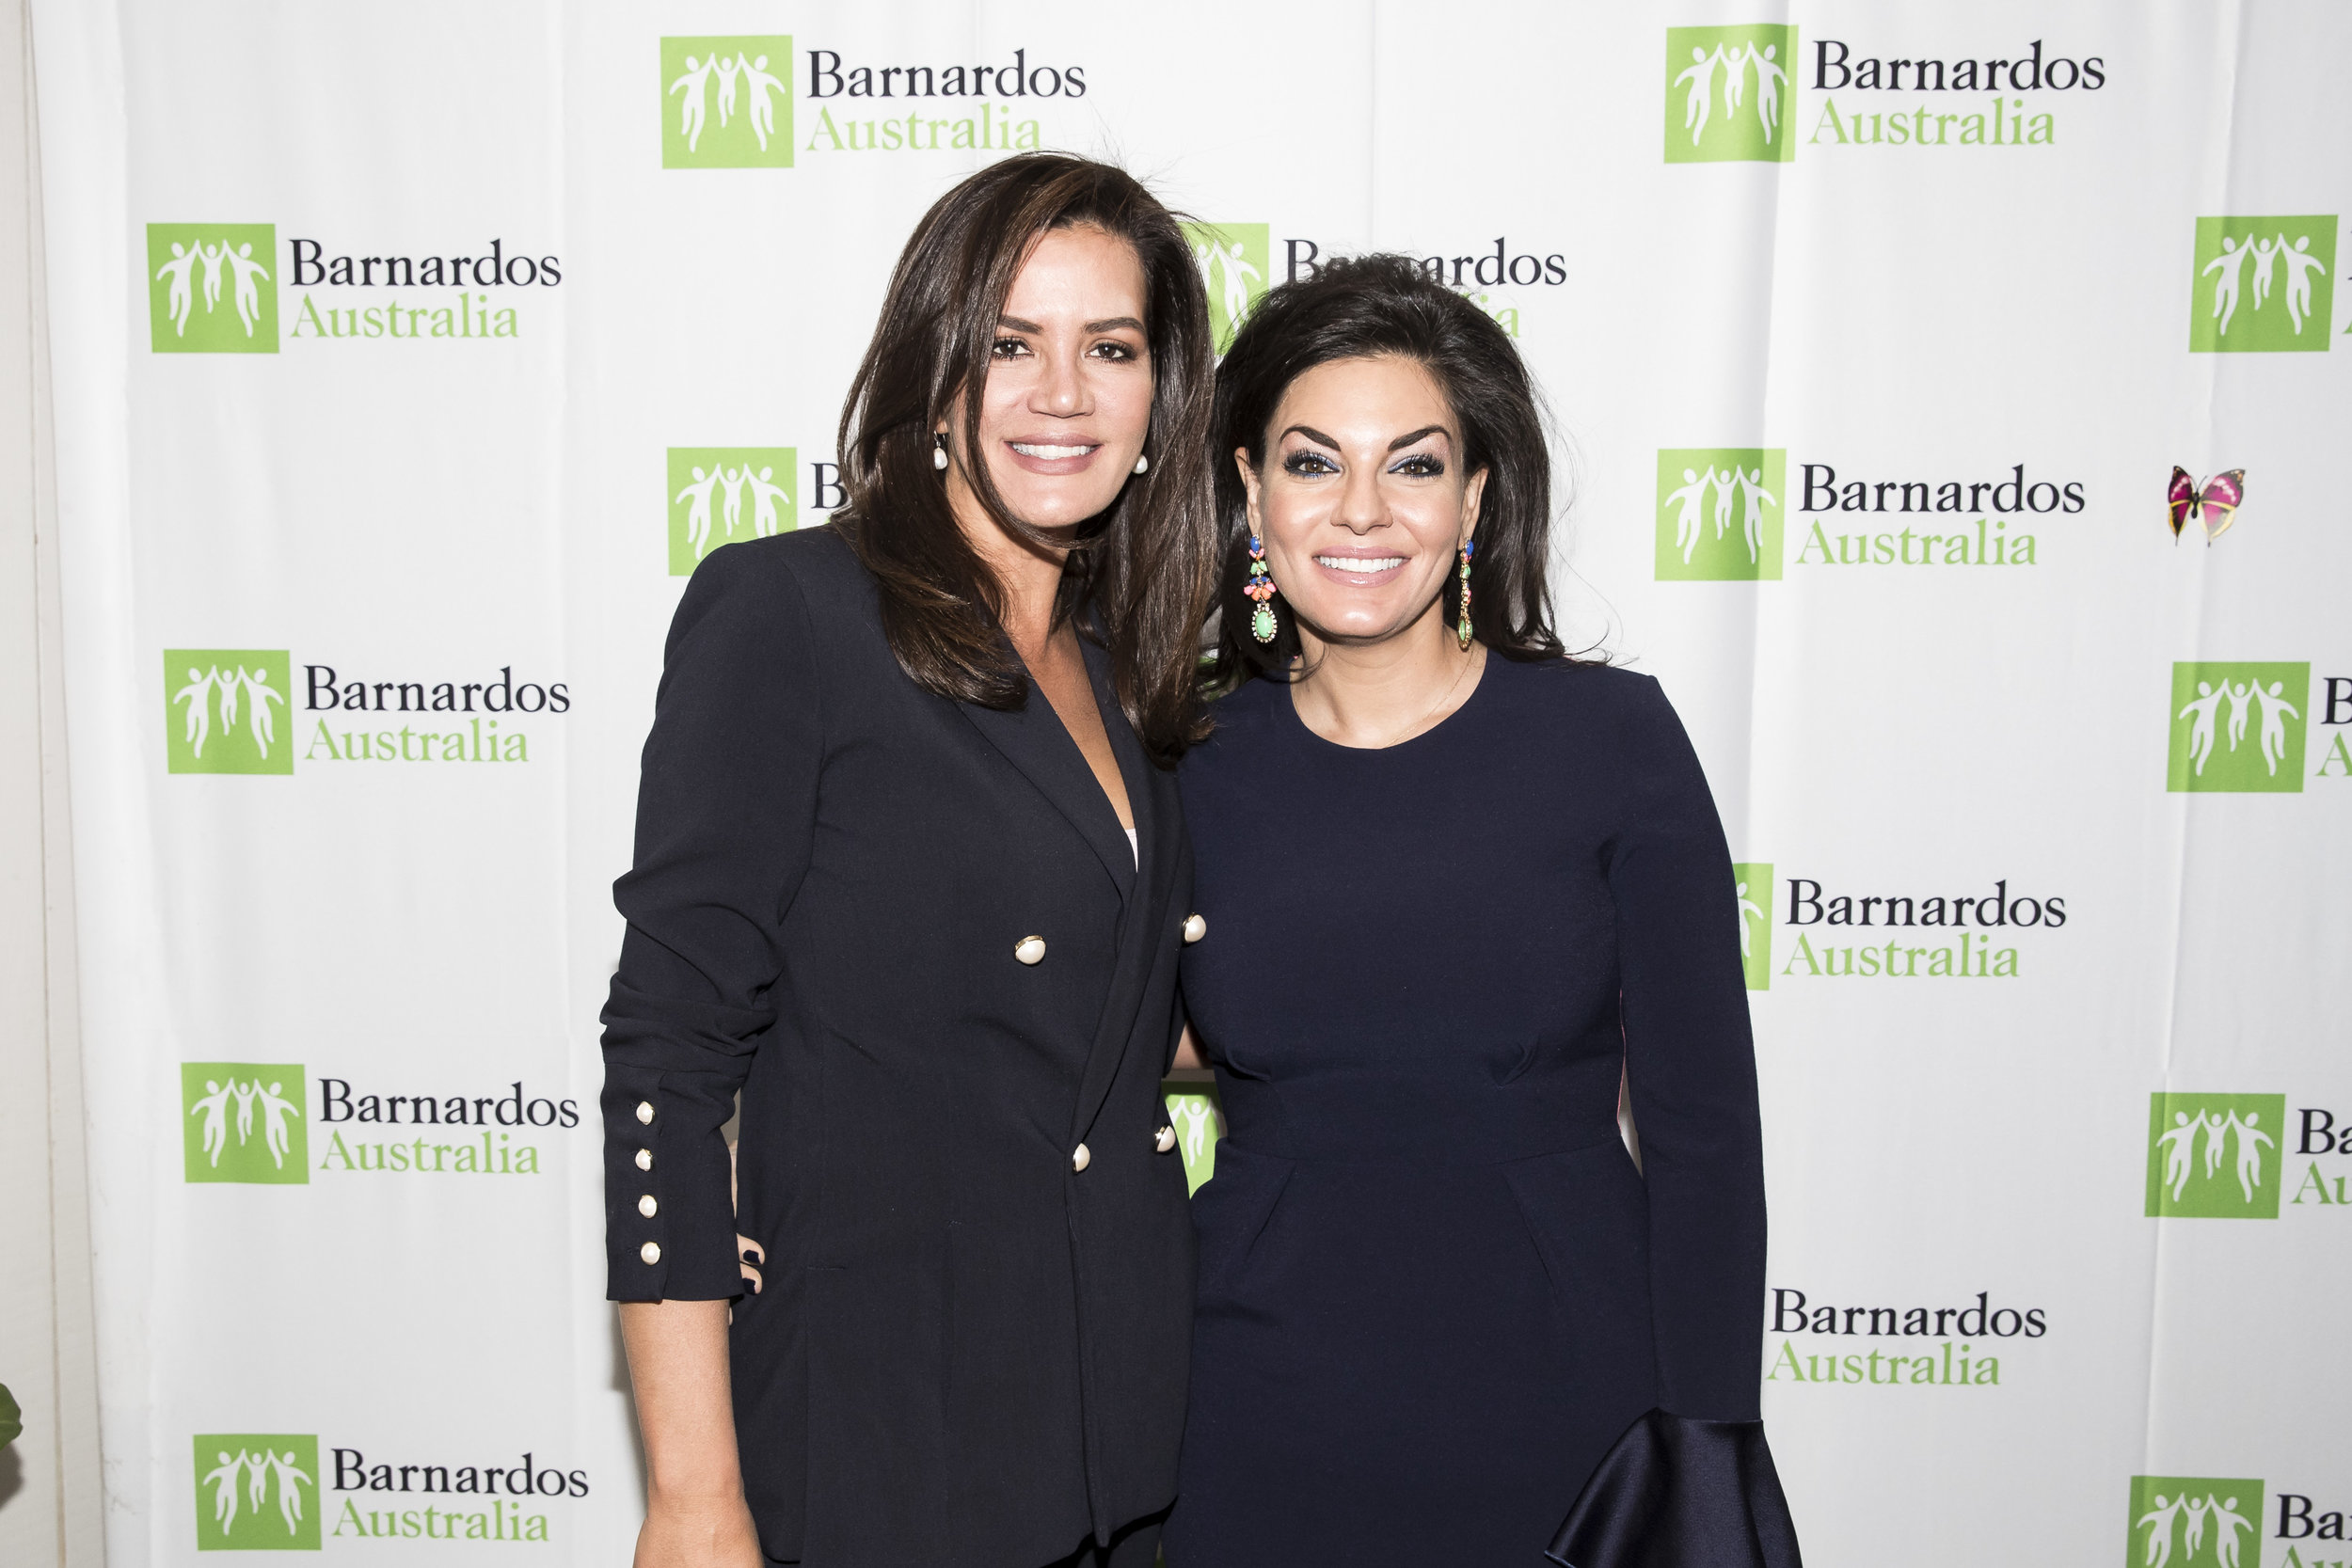 Nicole O'Neil and Krissy Marsh at the Barnados Fundraising Luncheon.jpg